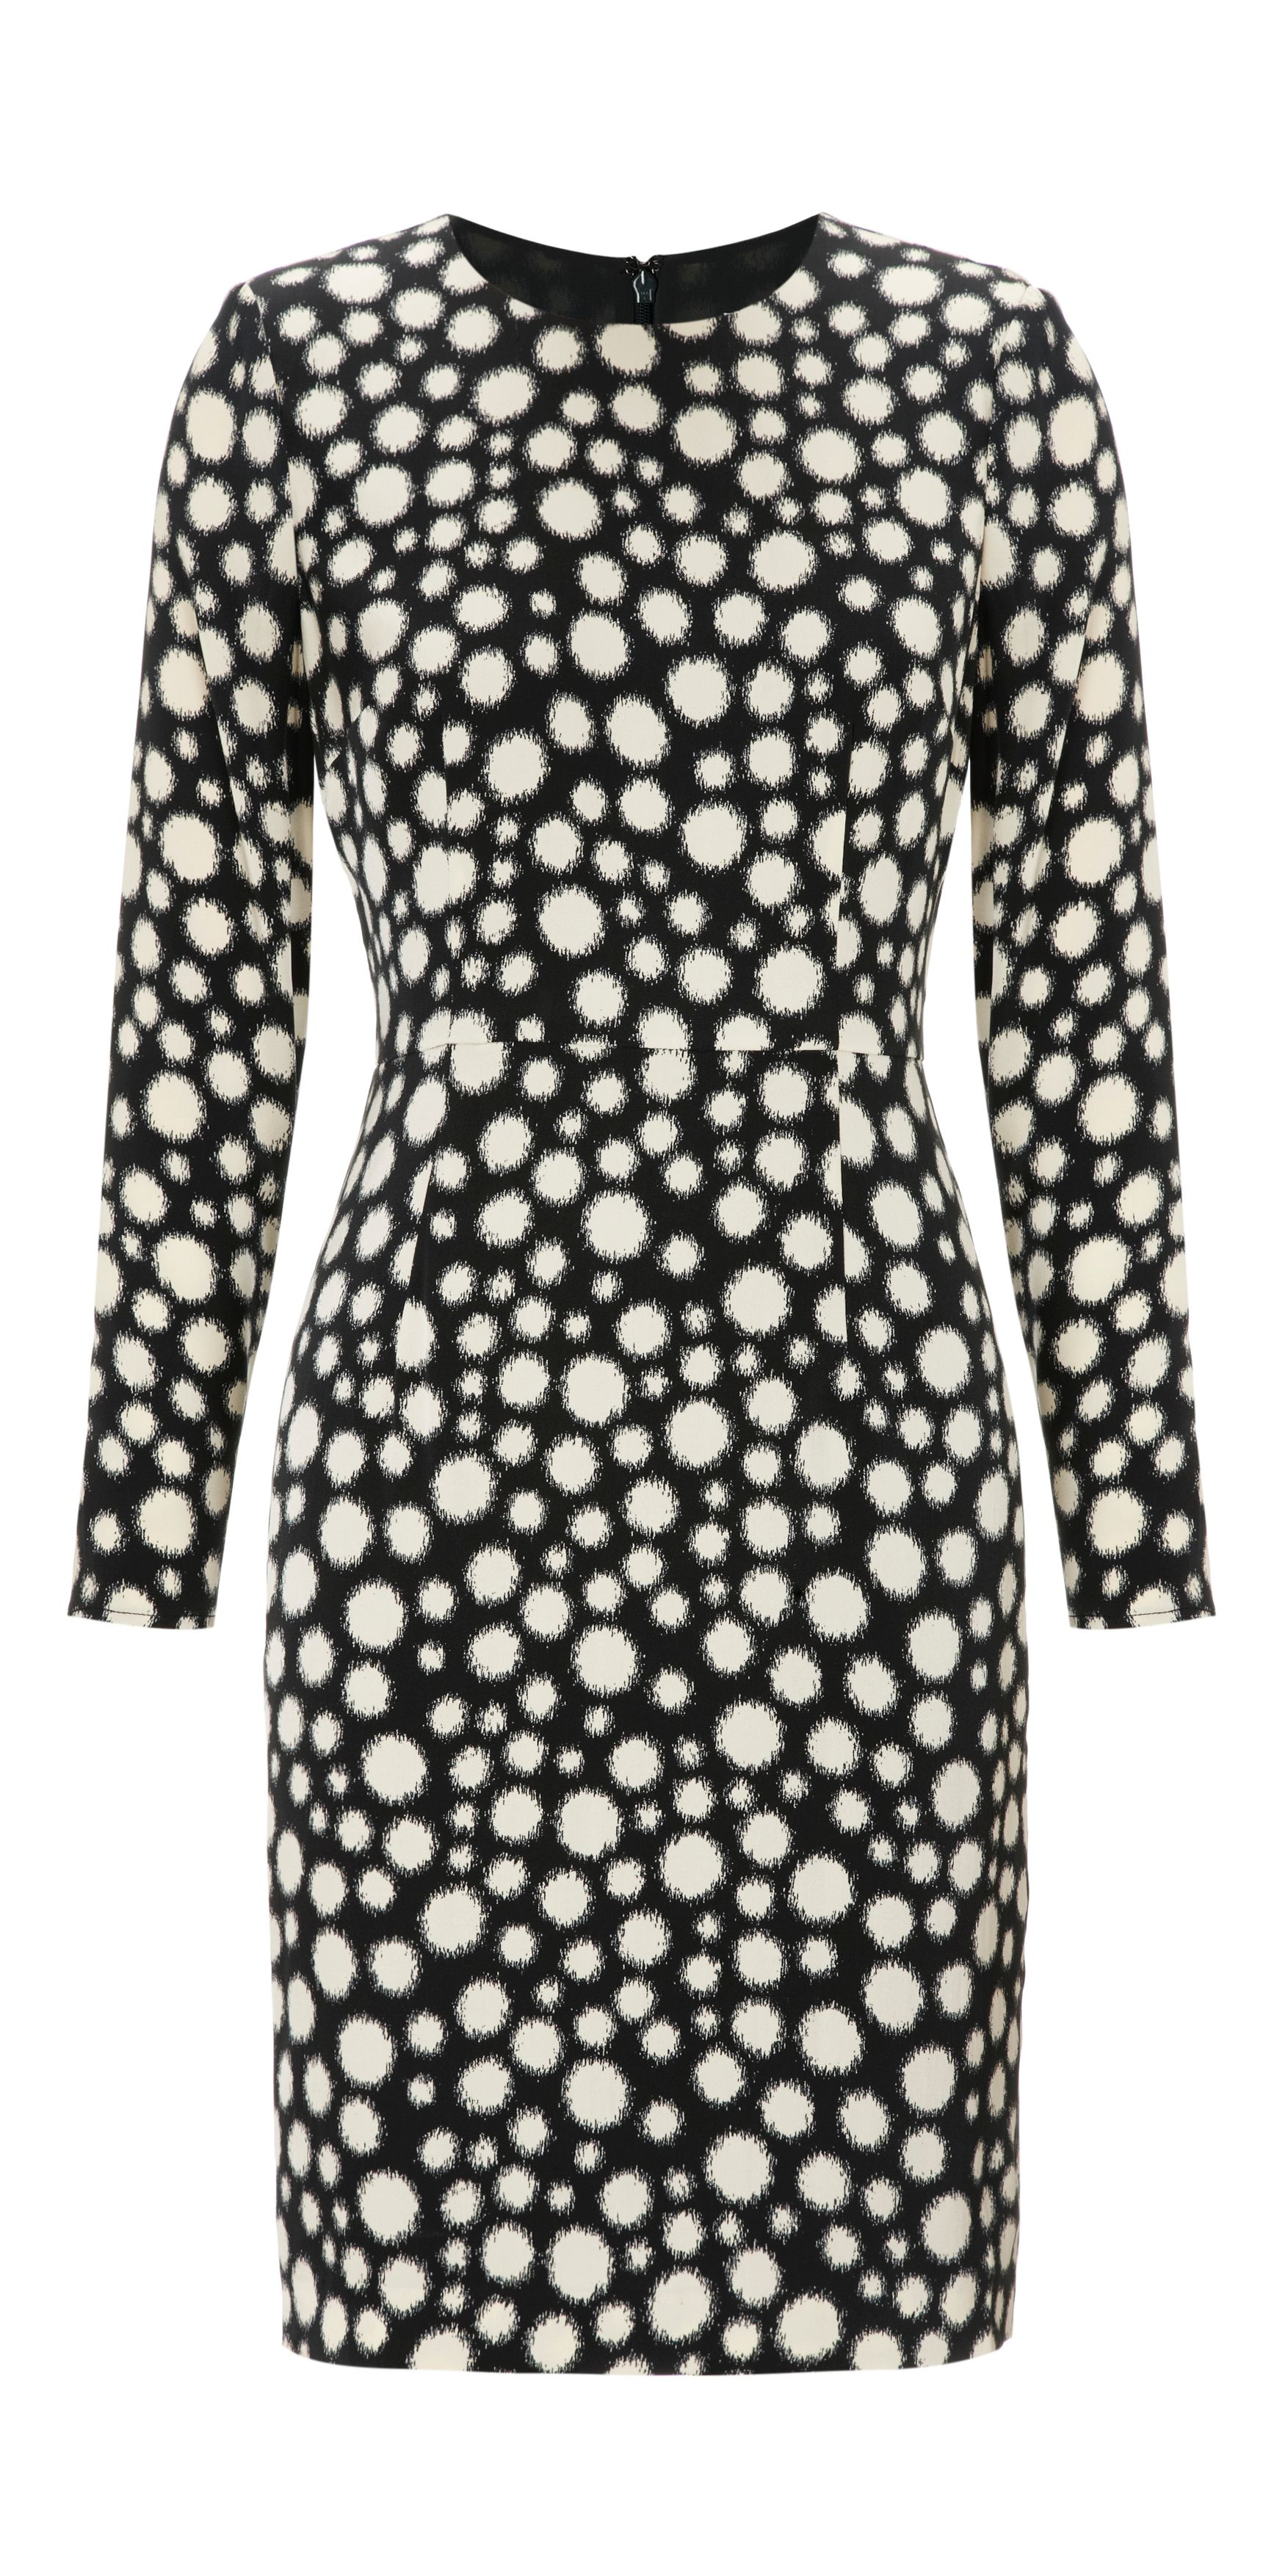 Spot Print Bodycon Dress